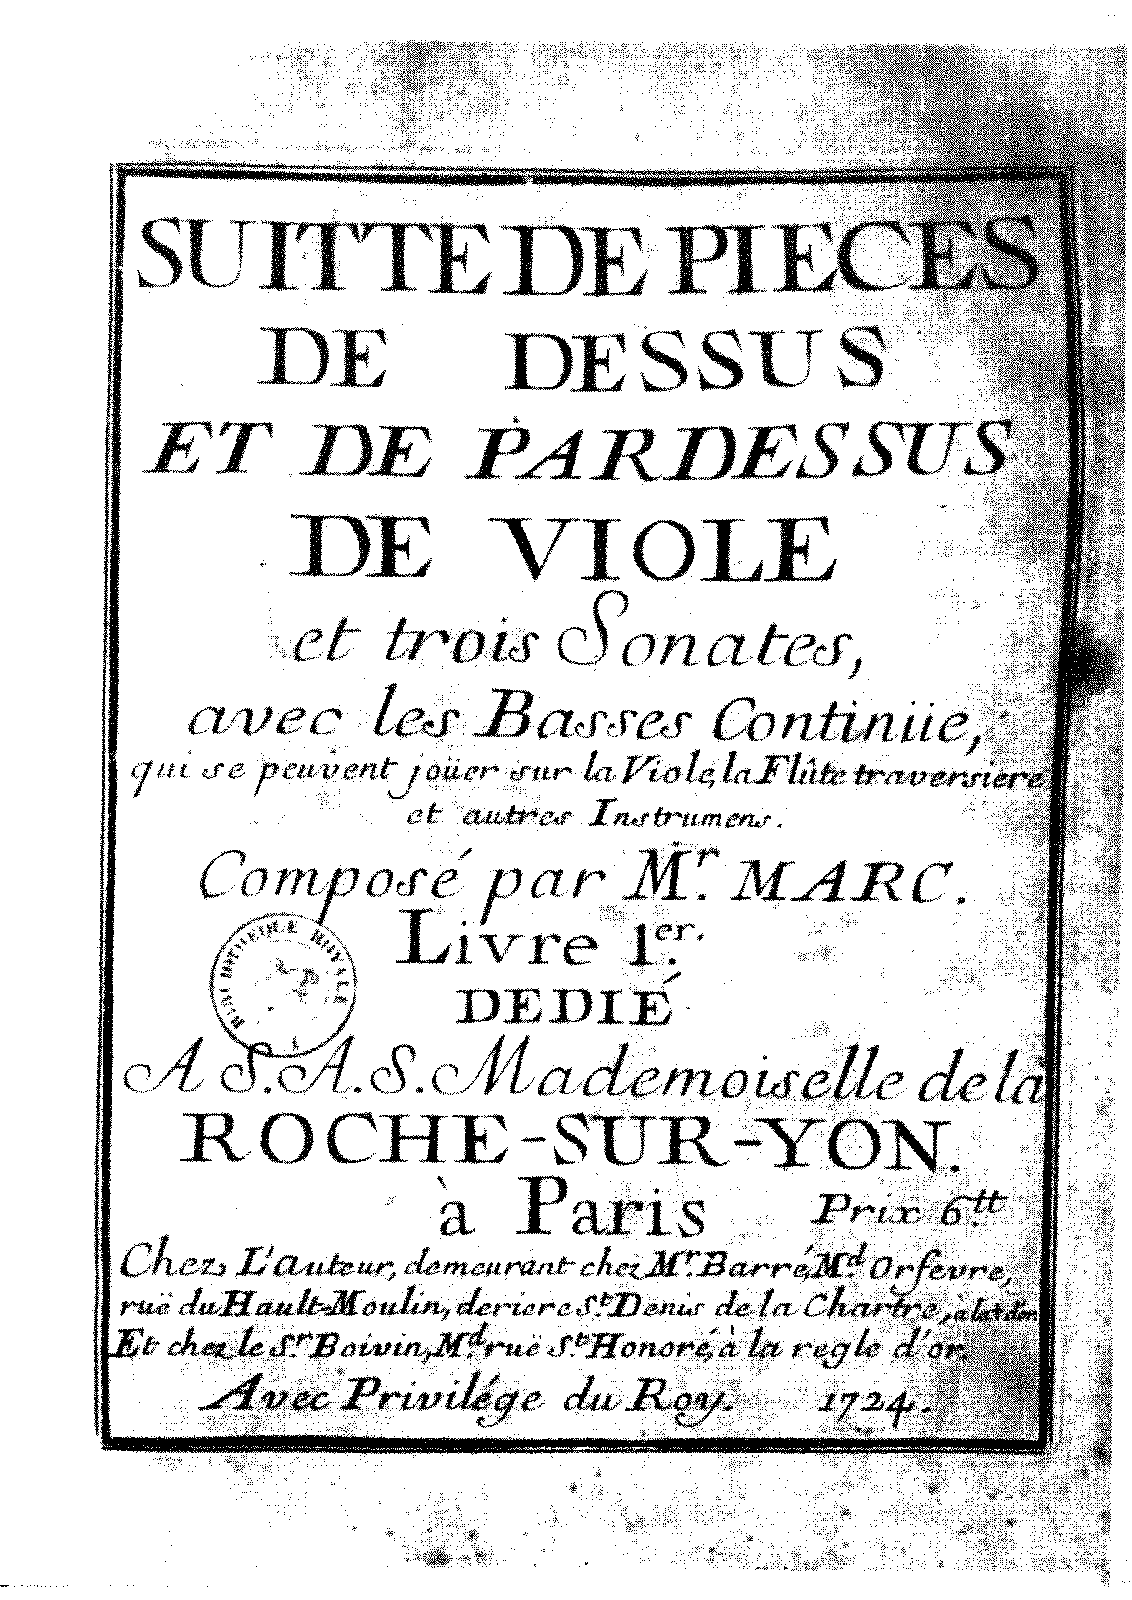 PMLP224840-Th. Marc Suitte de pieces.pdf